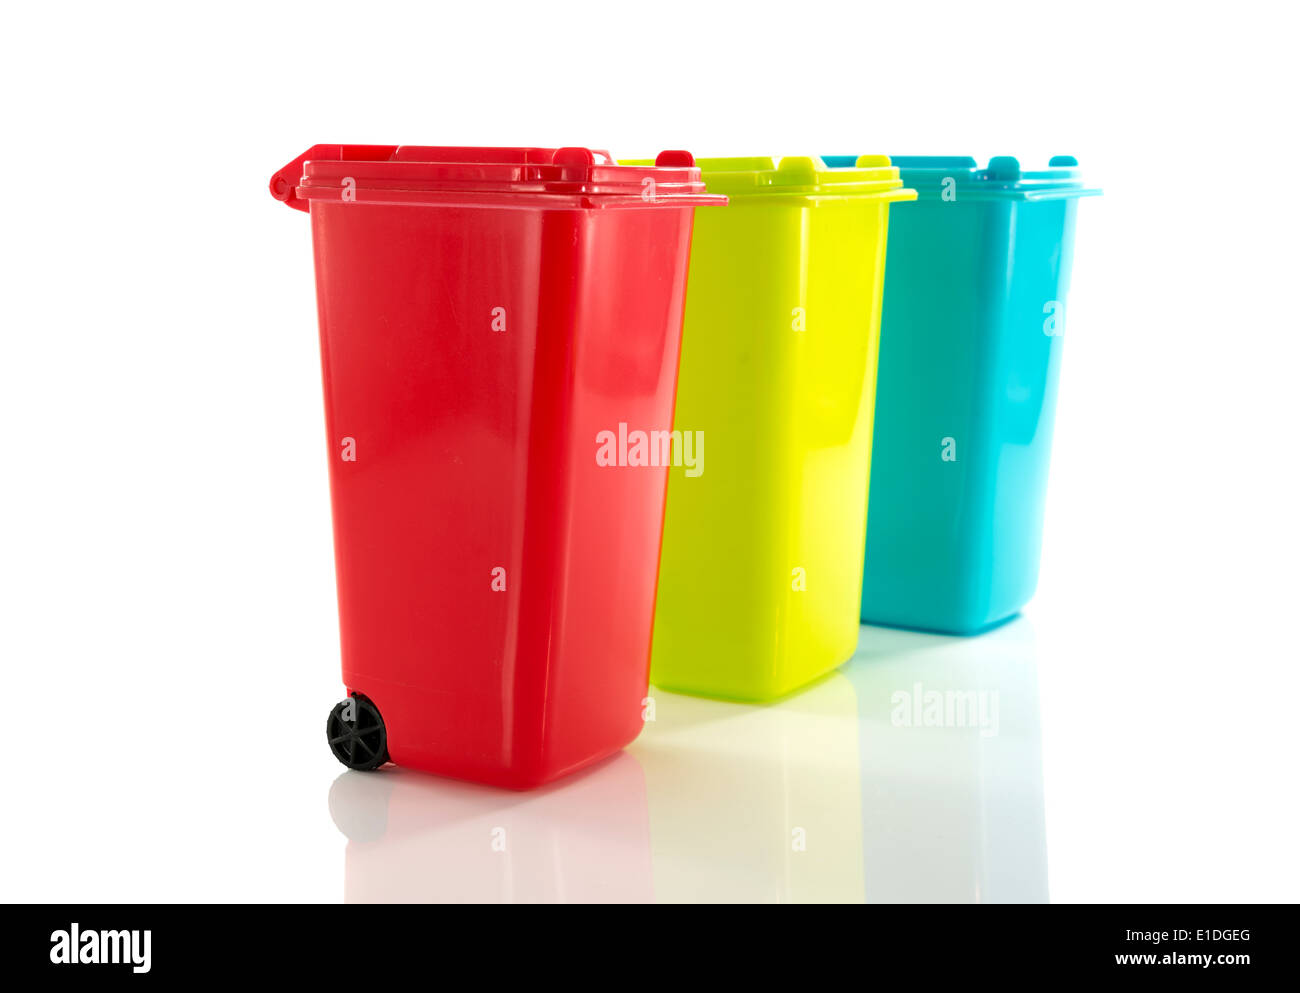 red blue and yellow green garbage bin isolated on white - Stock Image